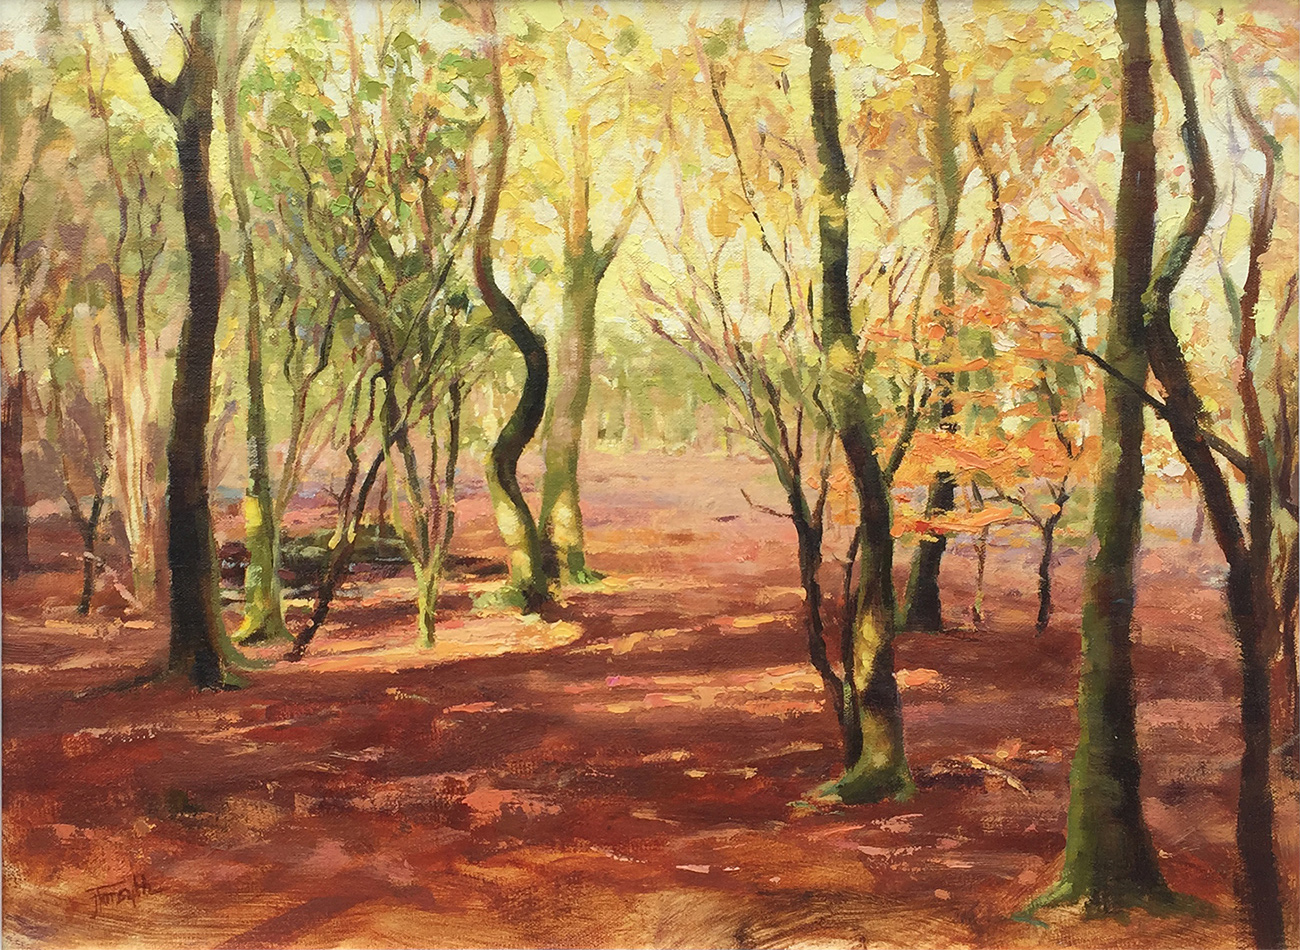 Oil painting savernake forest